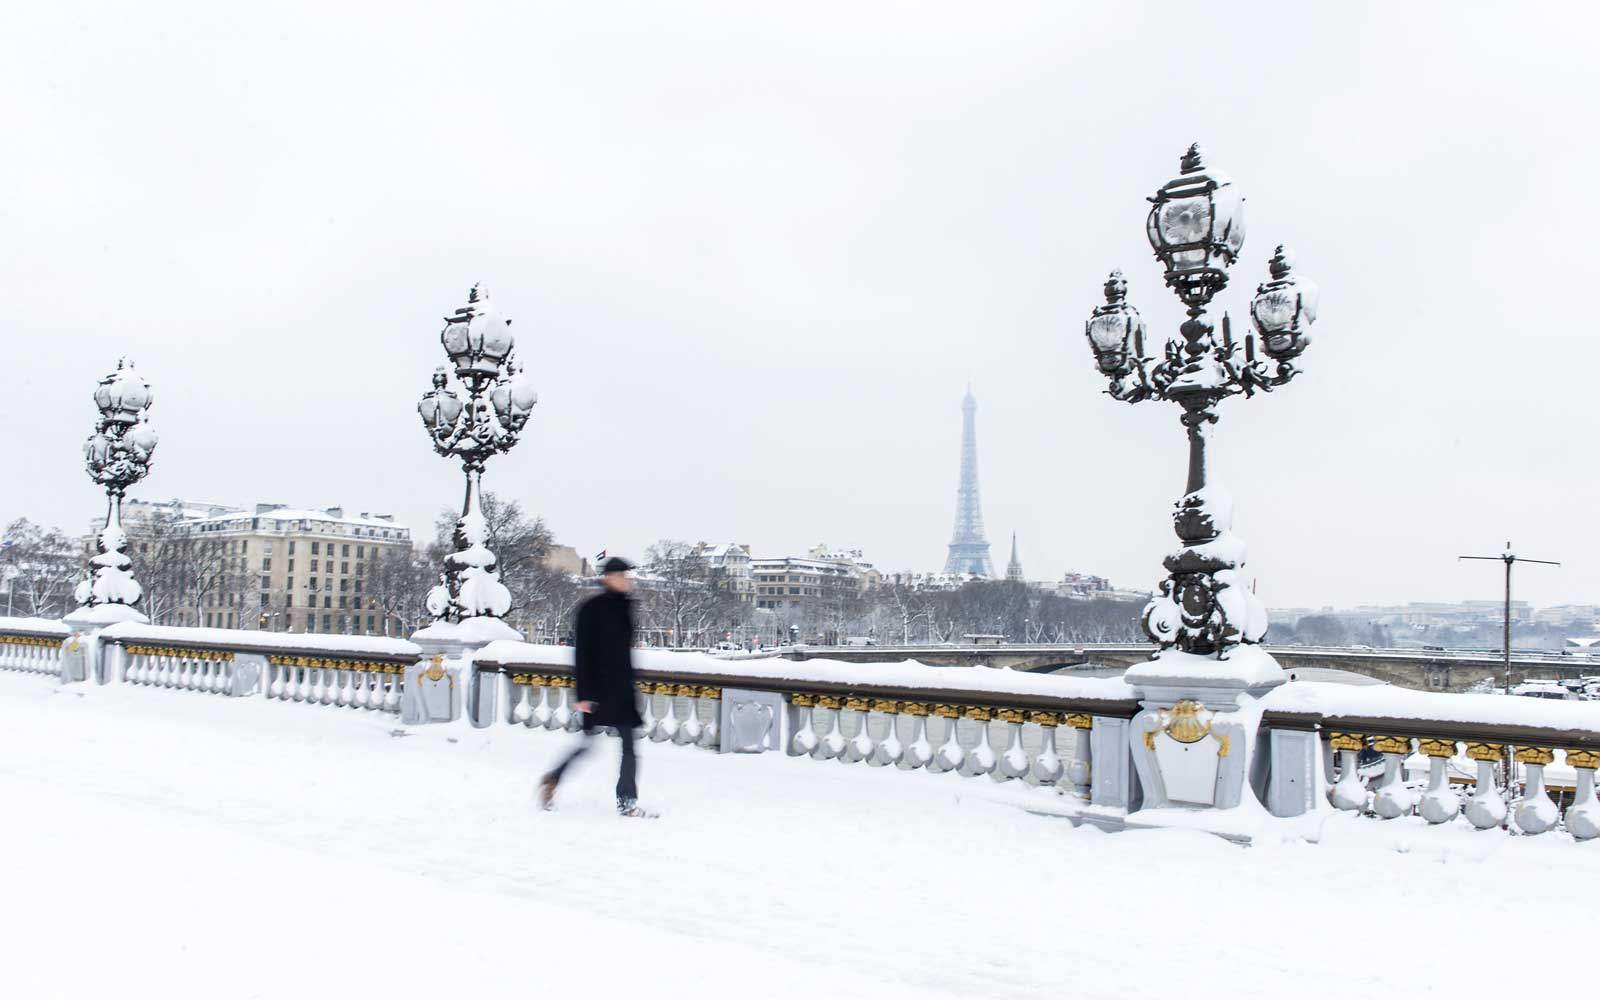 A man walks along a snow-covered bridge in Paris, France